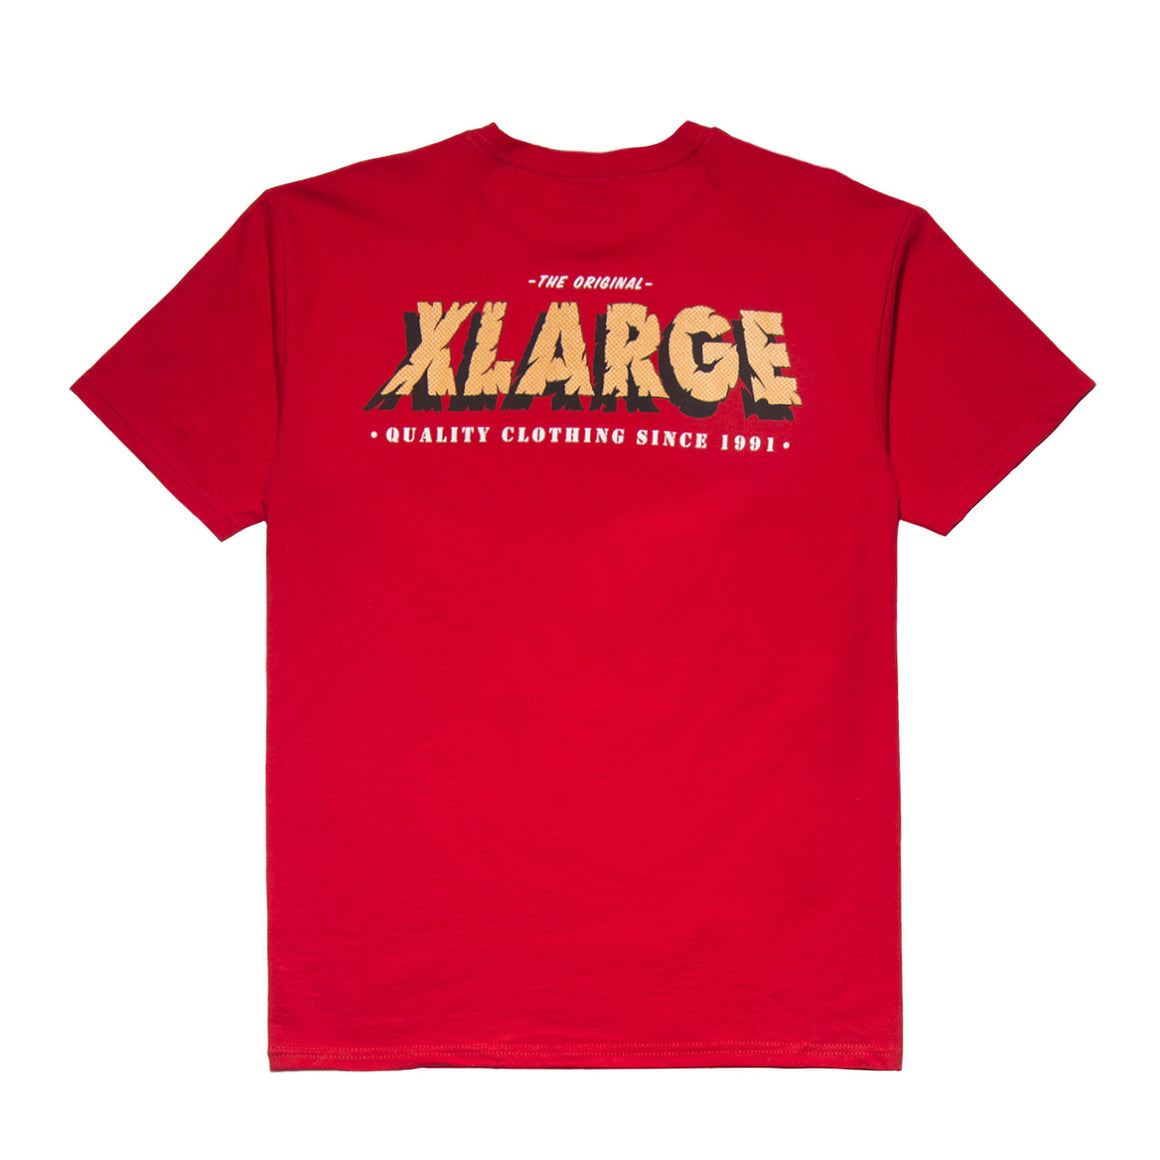 FURY SS TEE - X-Large Clothing